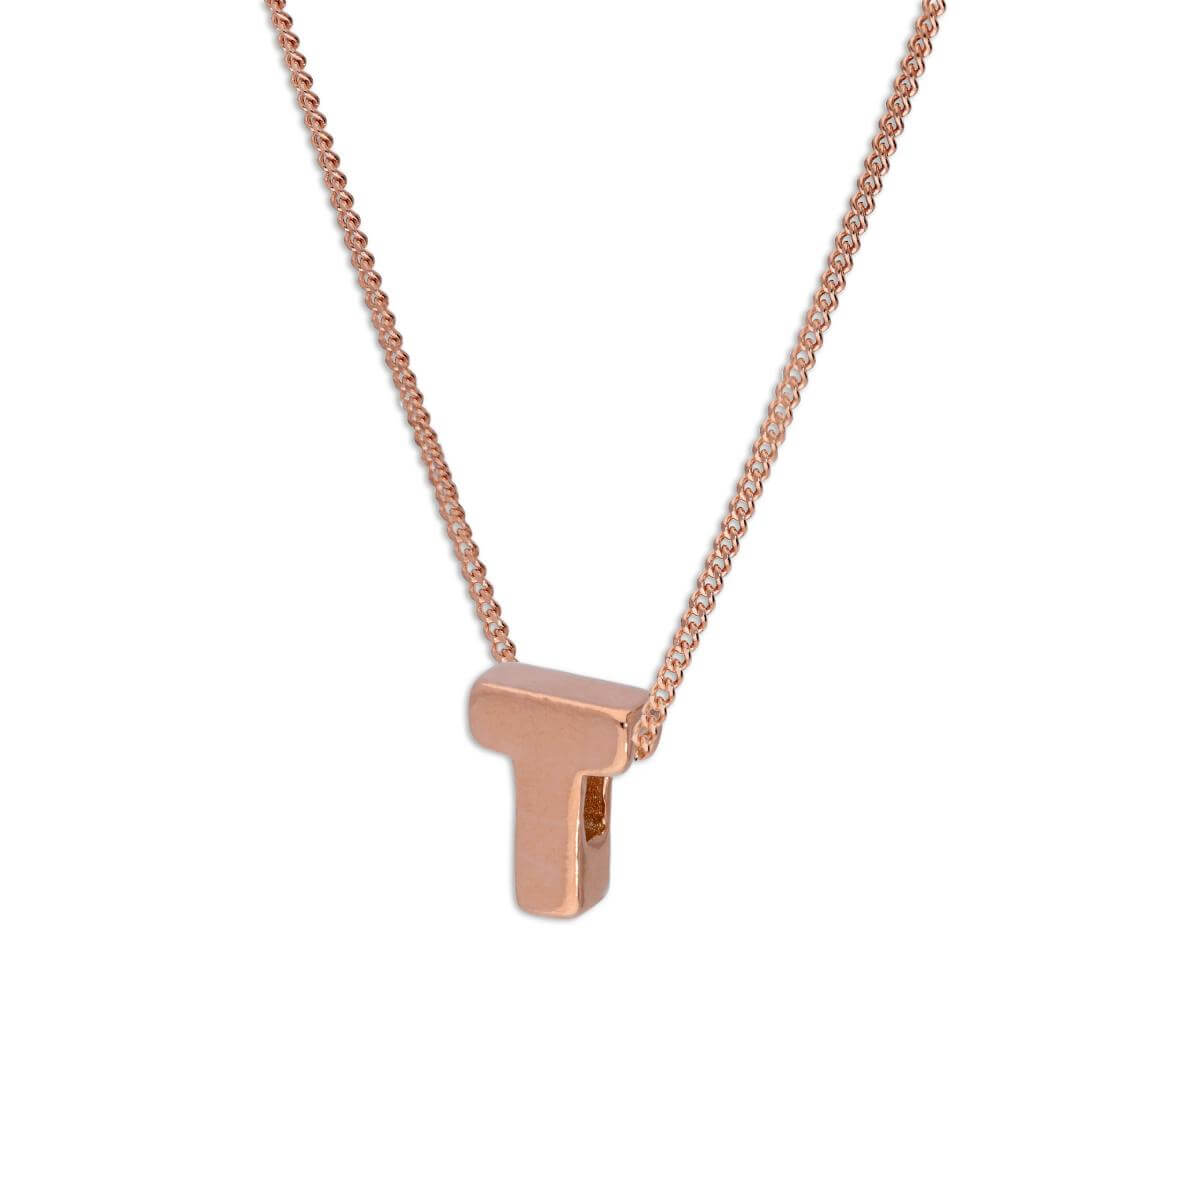 Rose Gold Plated Sterling Silver Letter T Pendant Necklace 14 - 32 Inches